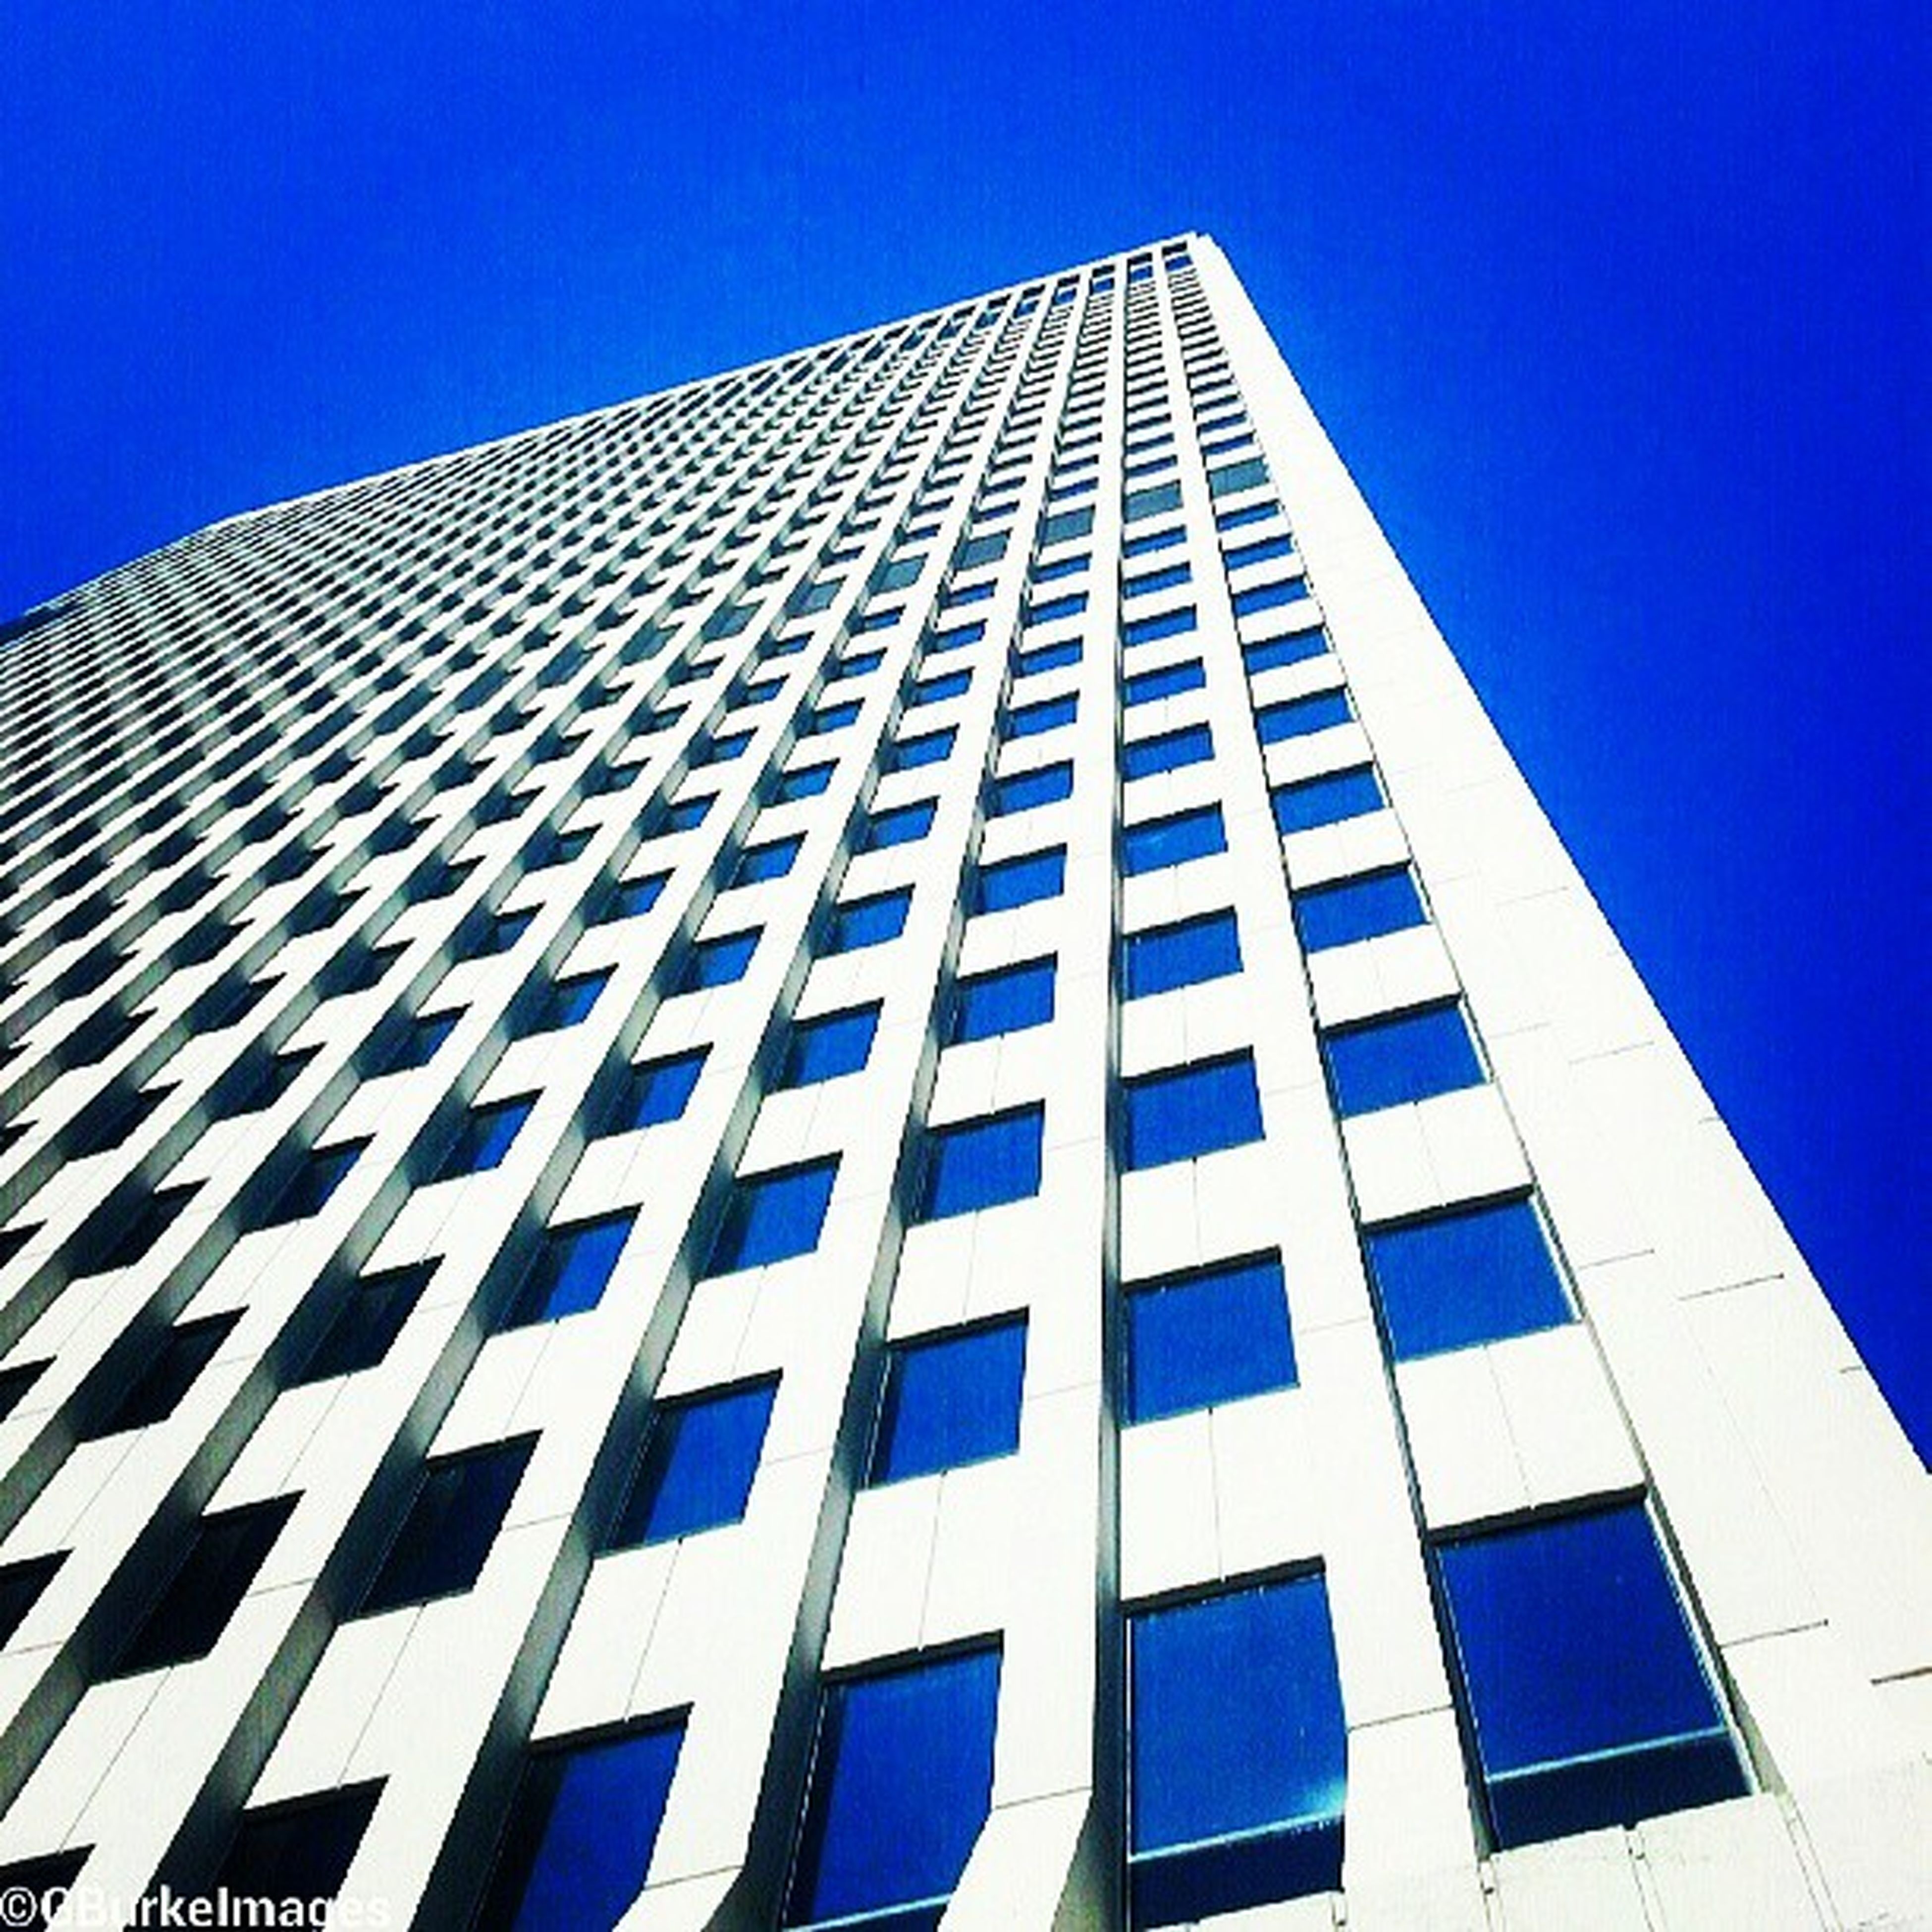 architecture, building exterior, built structure, low angle view, modern, office building, clear sky, skyscraper, city, blue, tall - high, tower, building, glass - material, repetition, reflection, window, day, pattern, outdoors